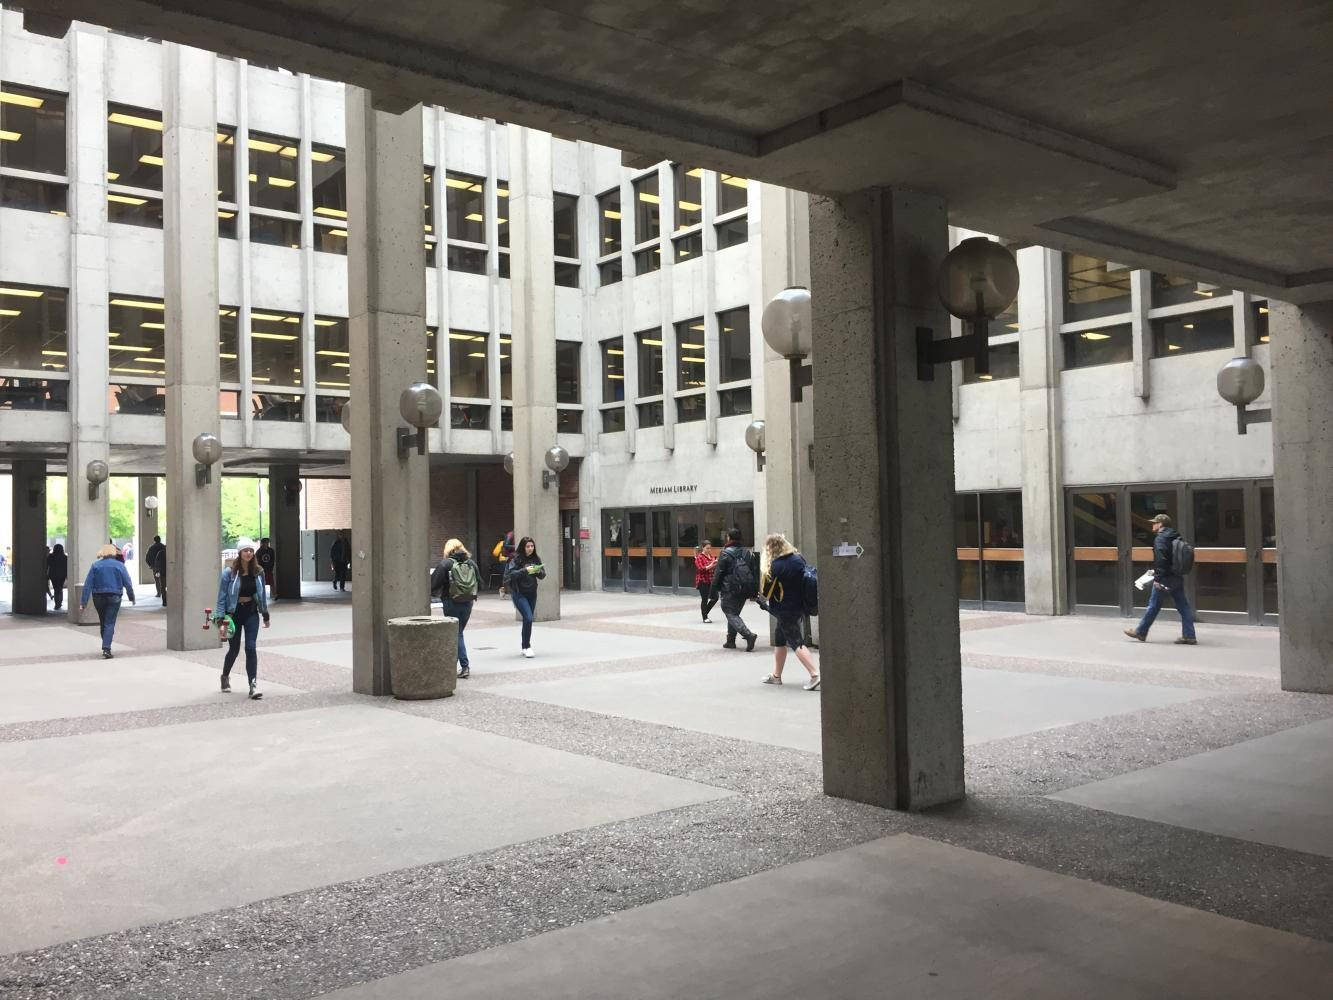 The+breezeway+of+Meriam+Library+expected+to+dramatically+change+over+summer+break.+Photo+credit%3A+Carly+Campbell